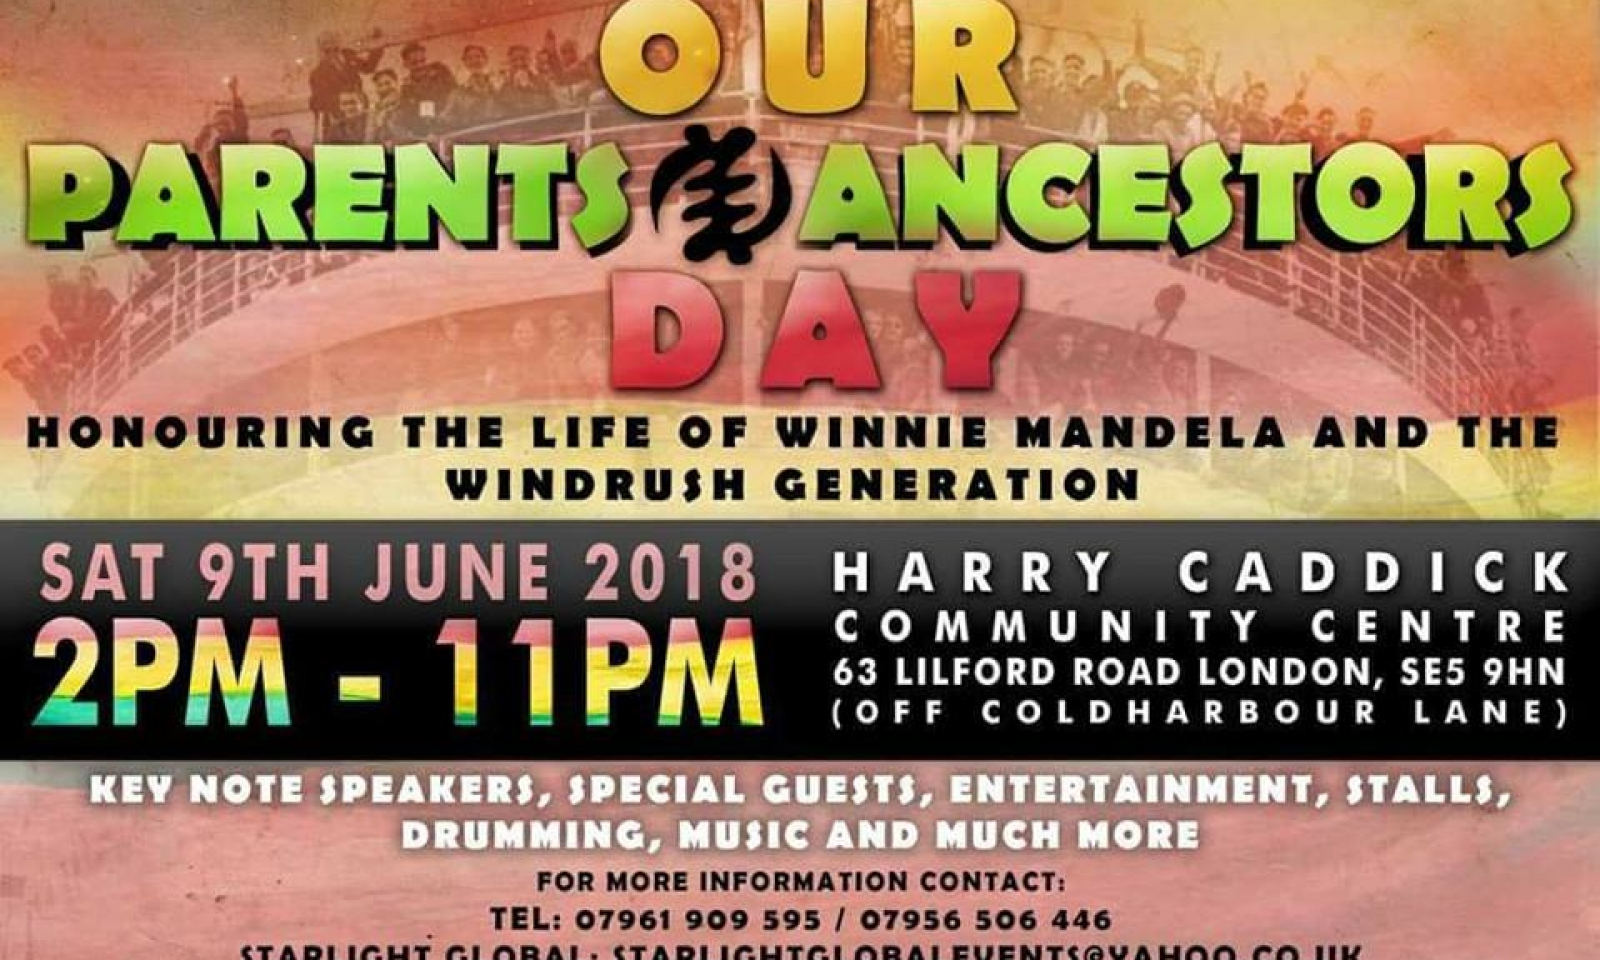 Parents And Ancestor's Day 2018